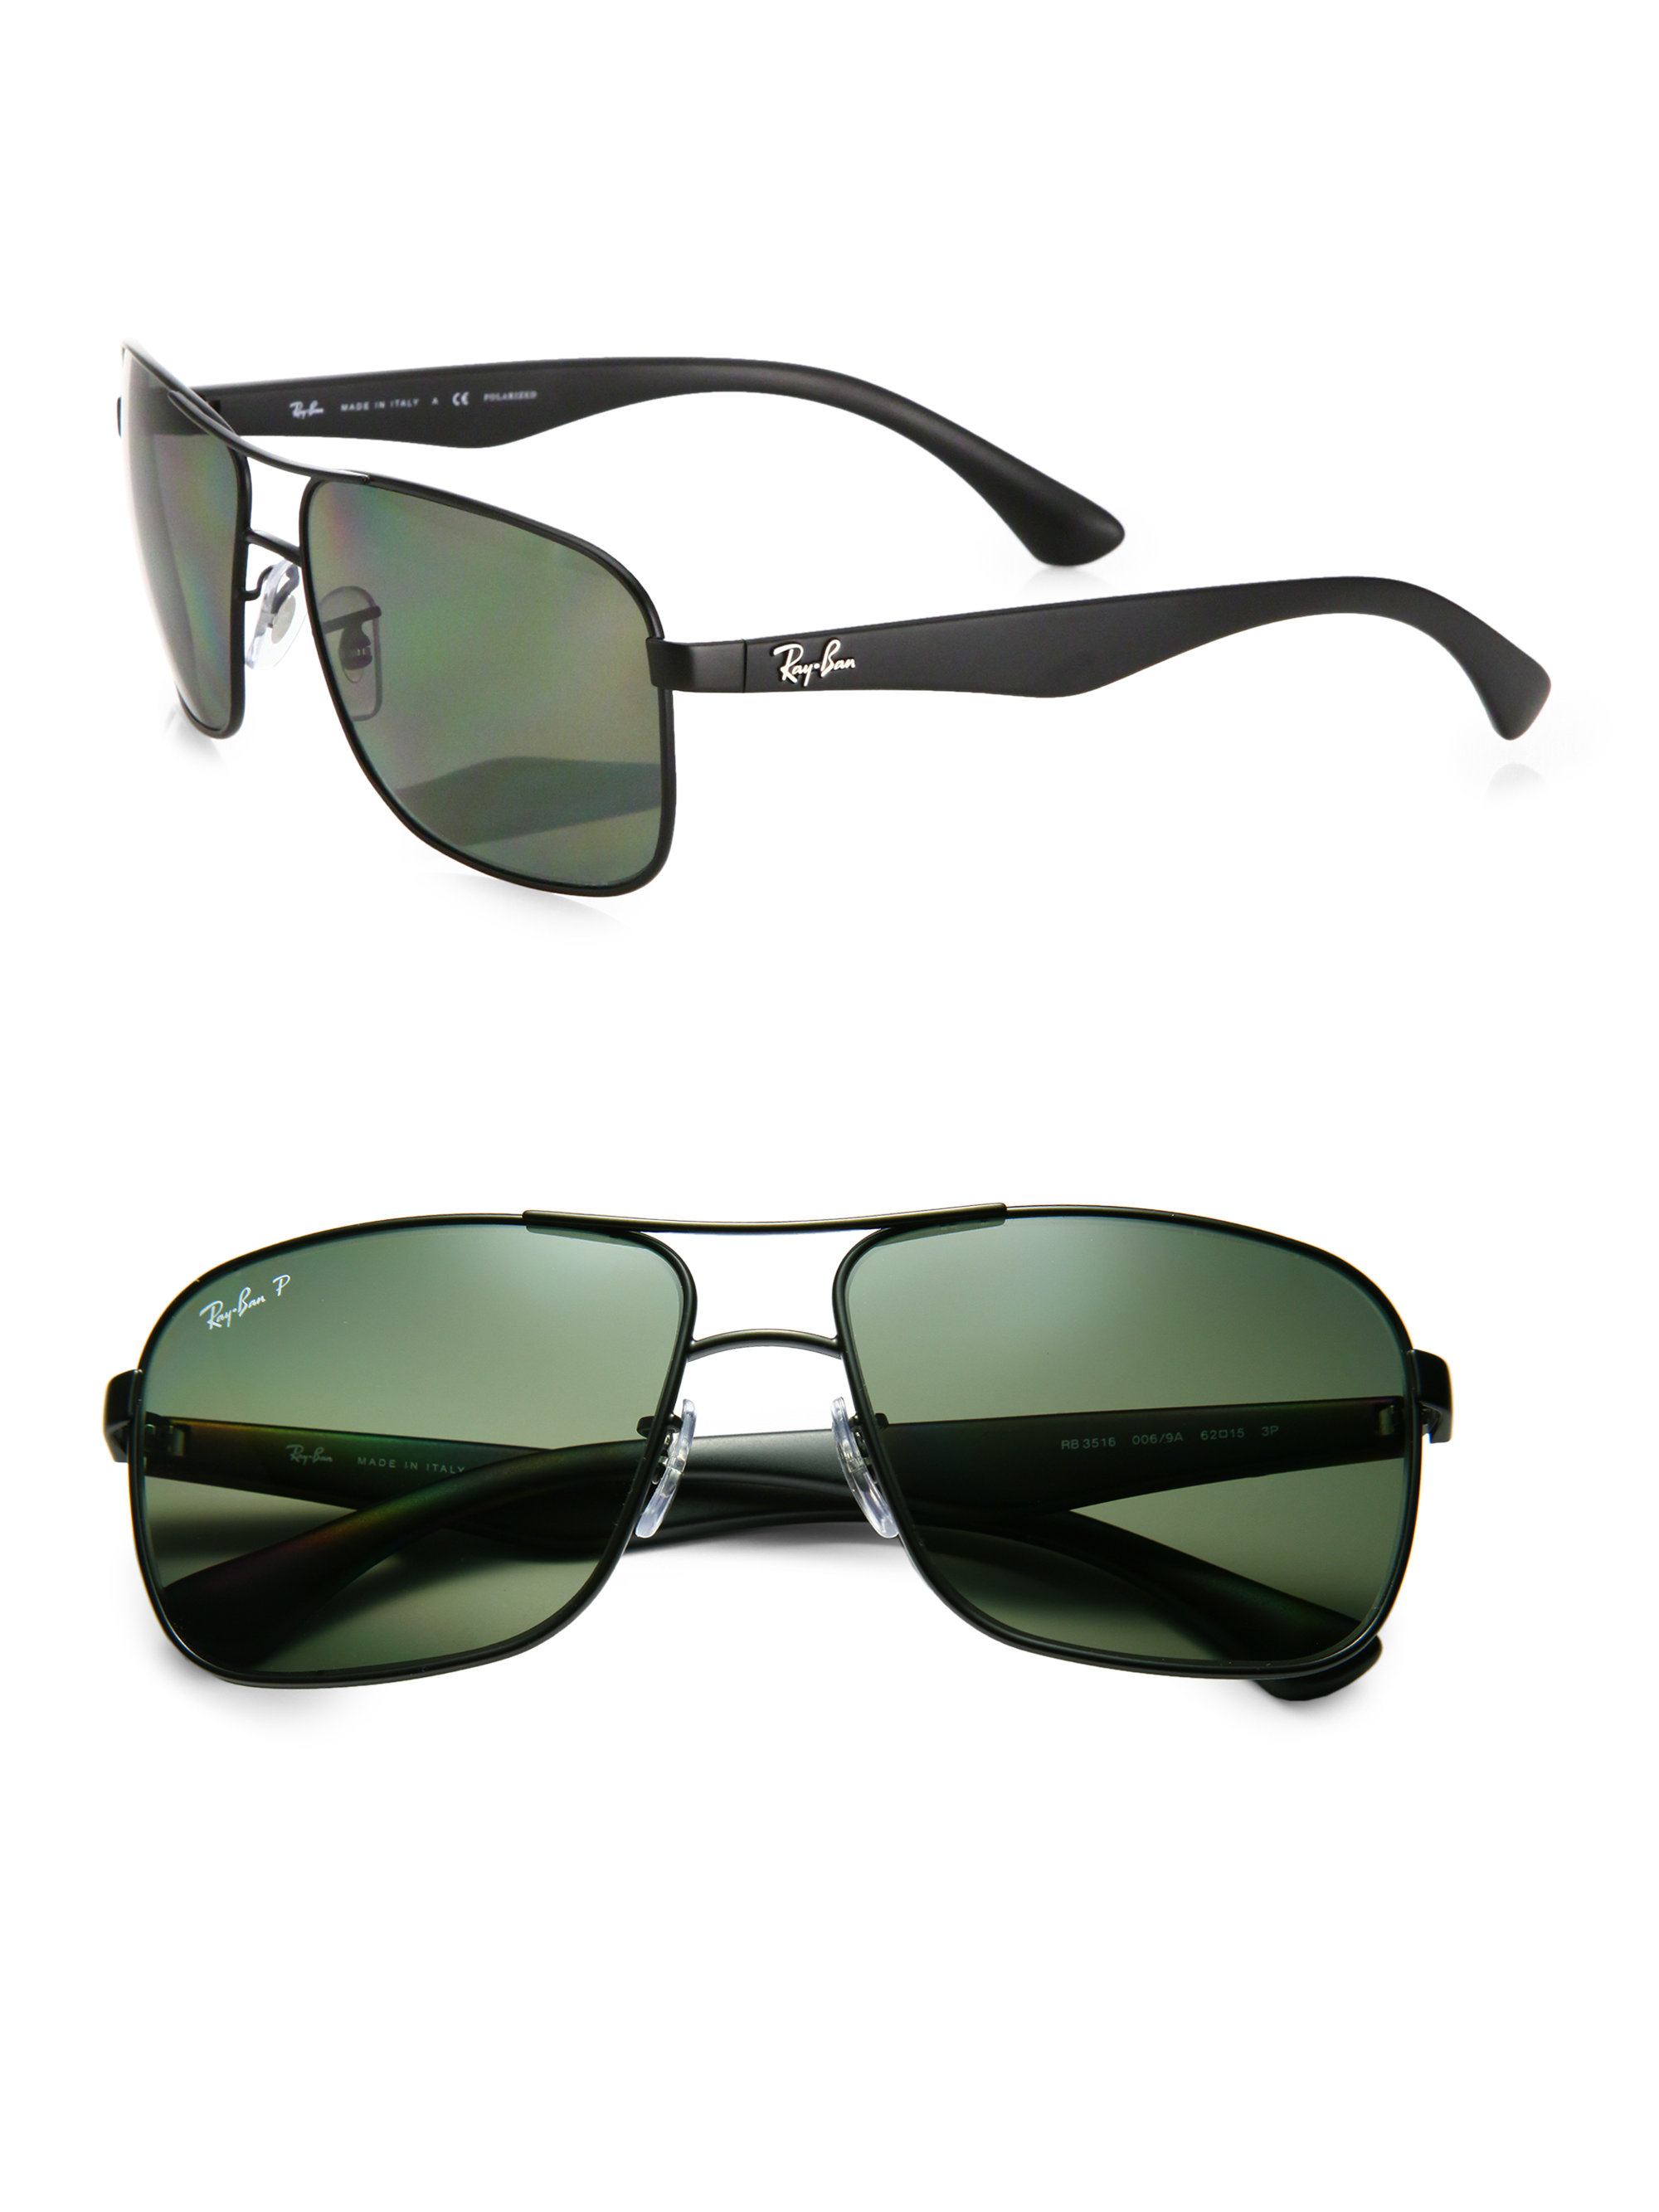 ray ban square sunglasses  Ray Ban Square Aviator Sunglasses - Ficts